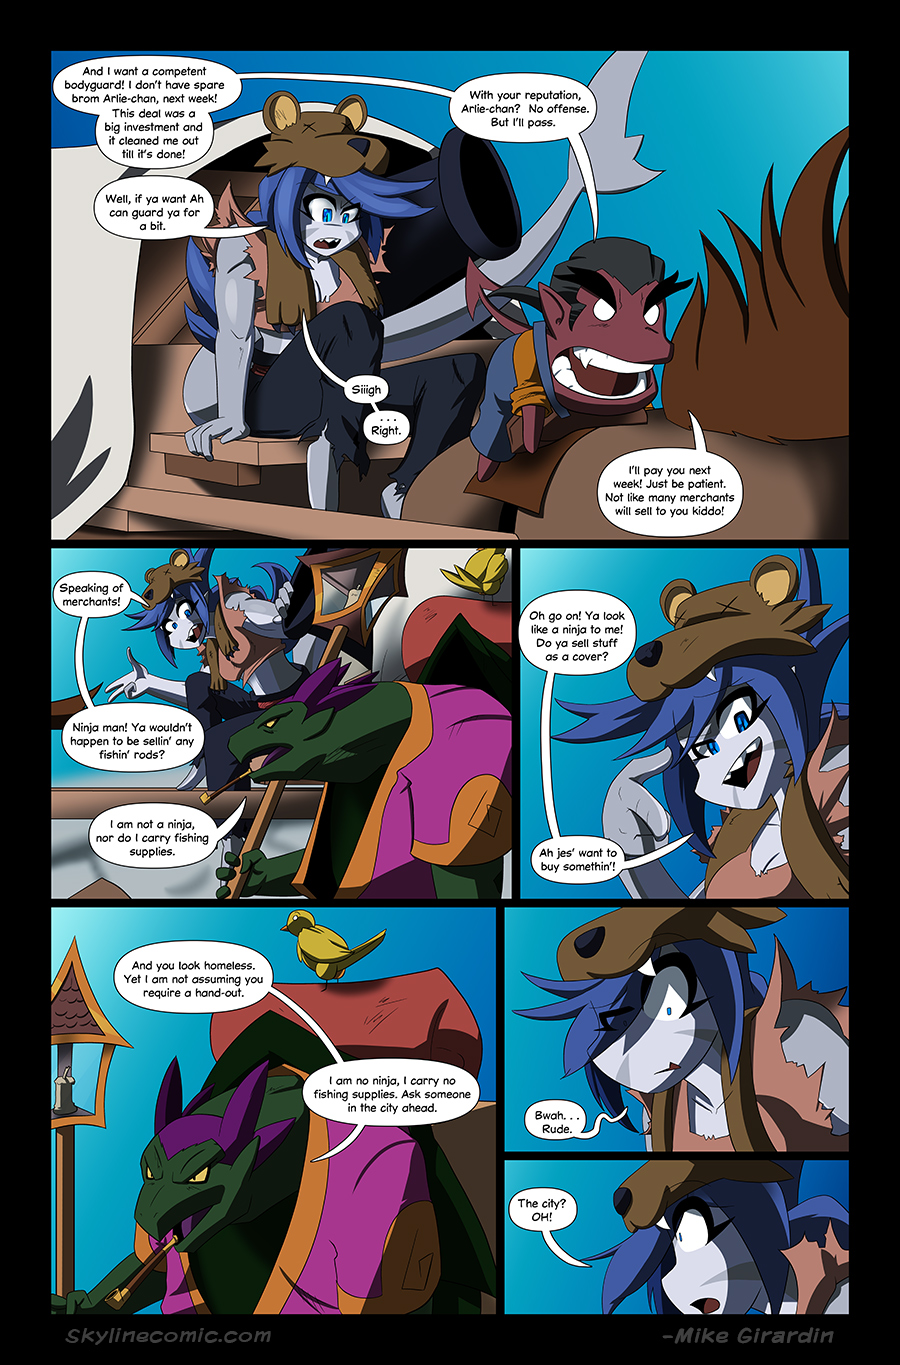 Journey to the Skyline issue 03 page 17